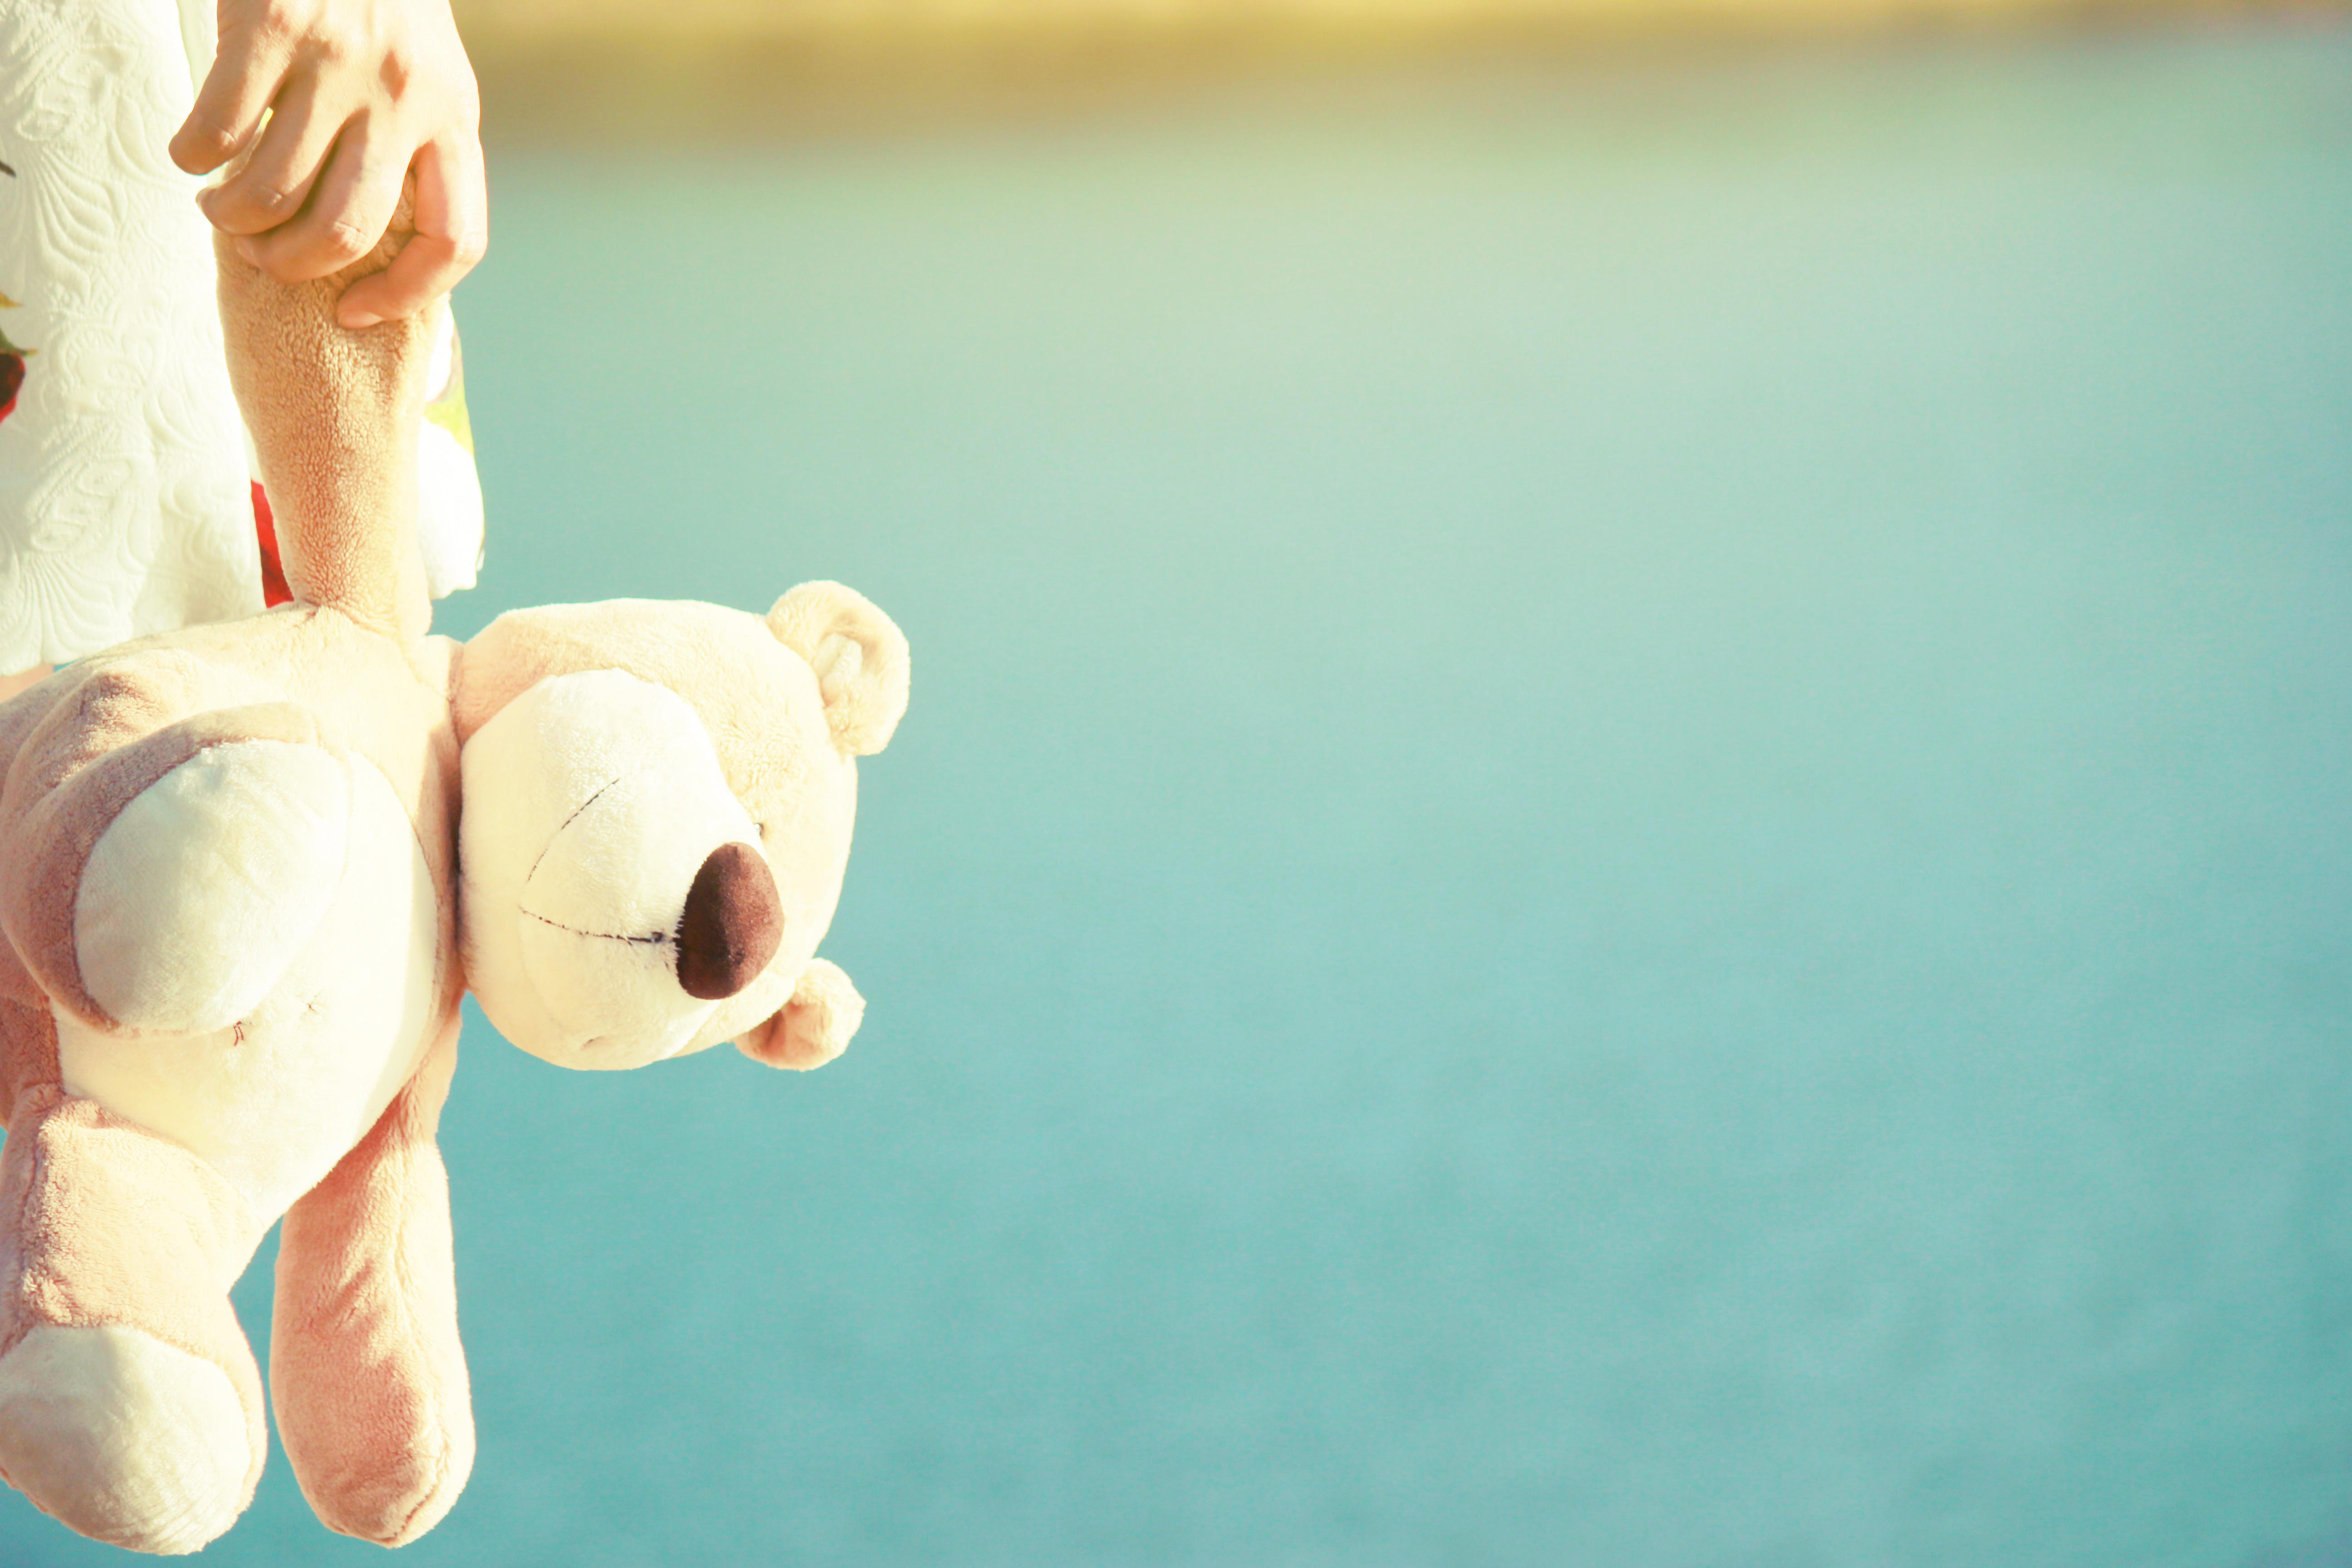 Cropped Hand Of Woman Holding Teddy Bear At Beach